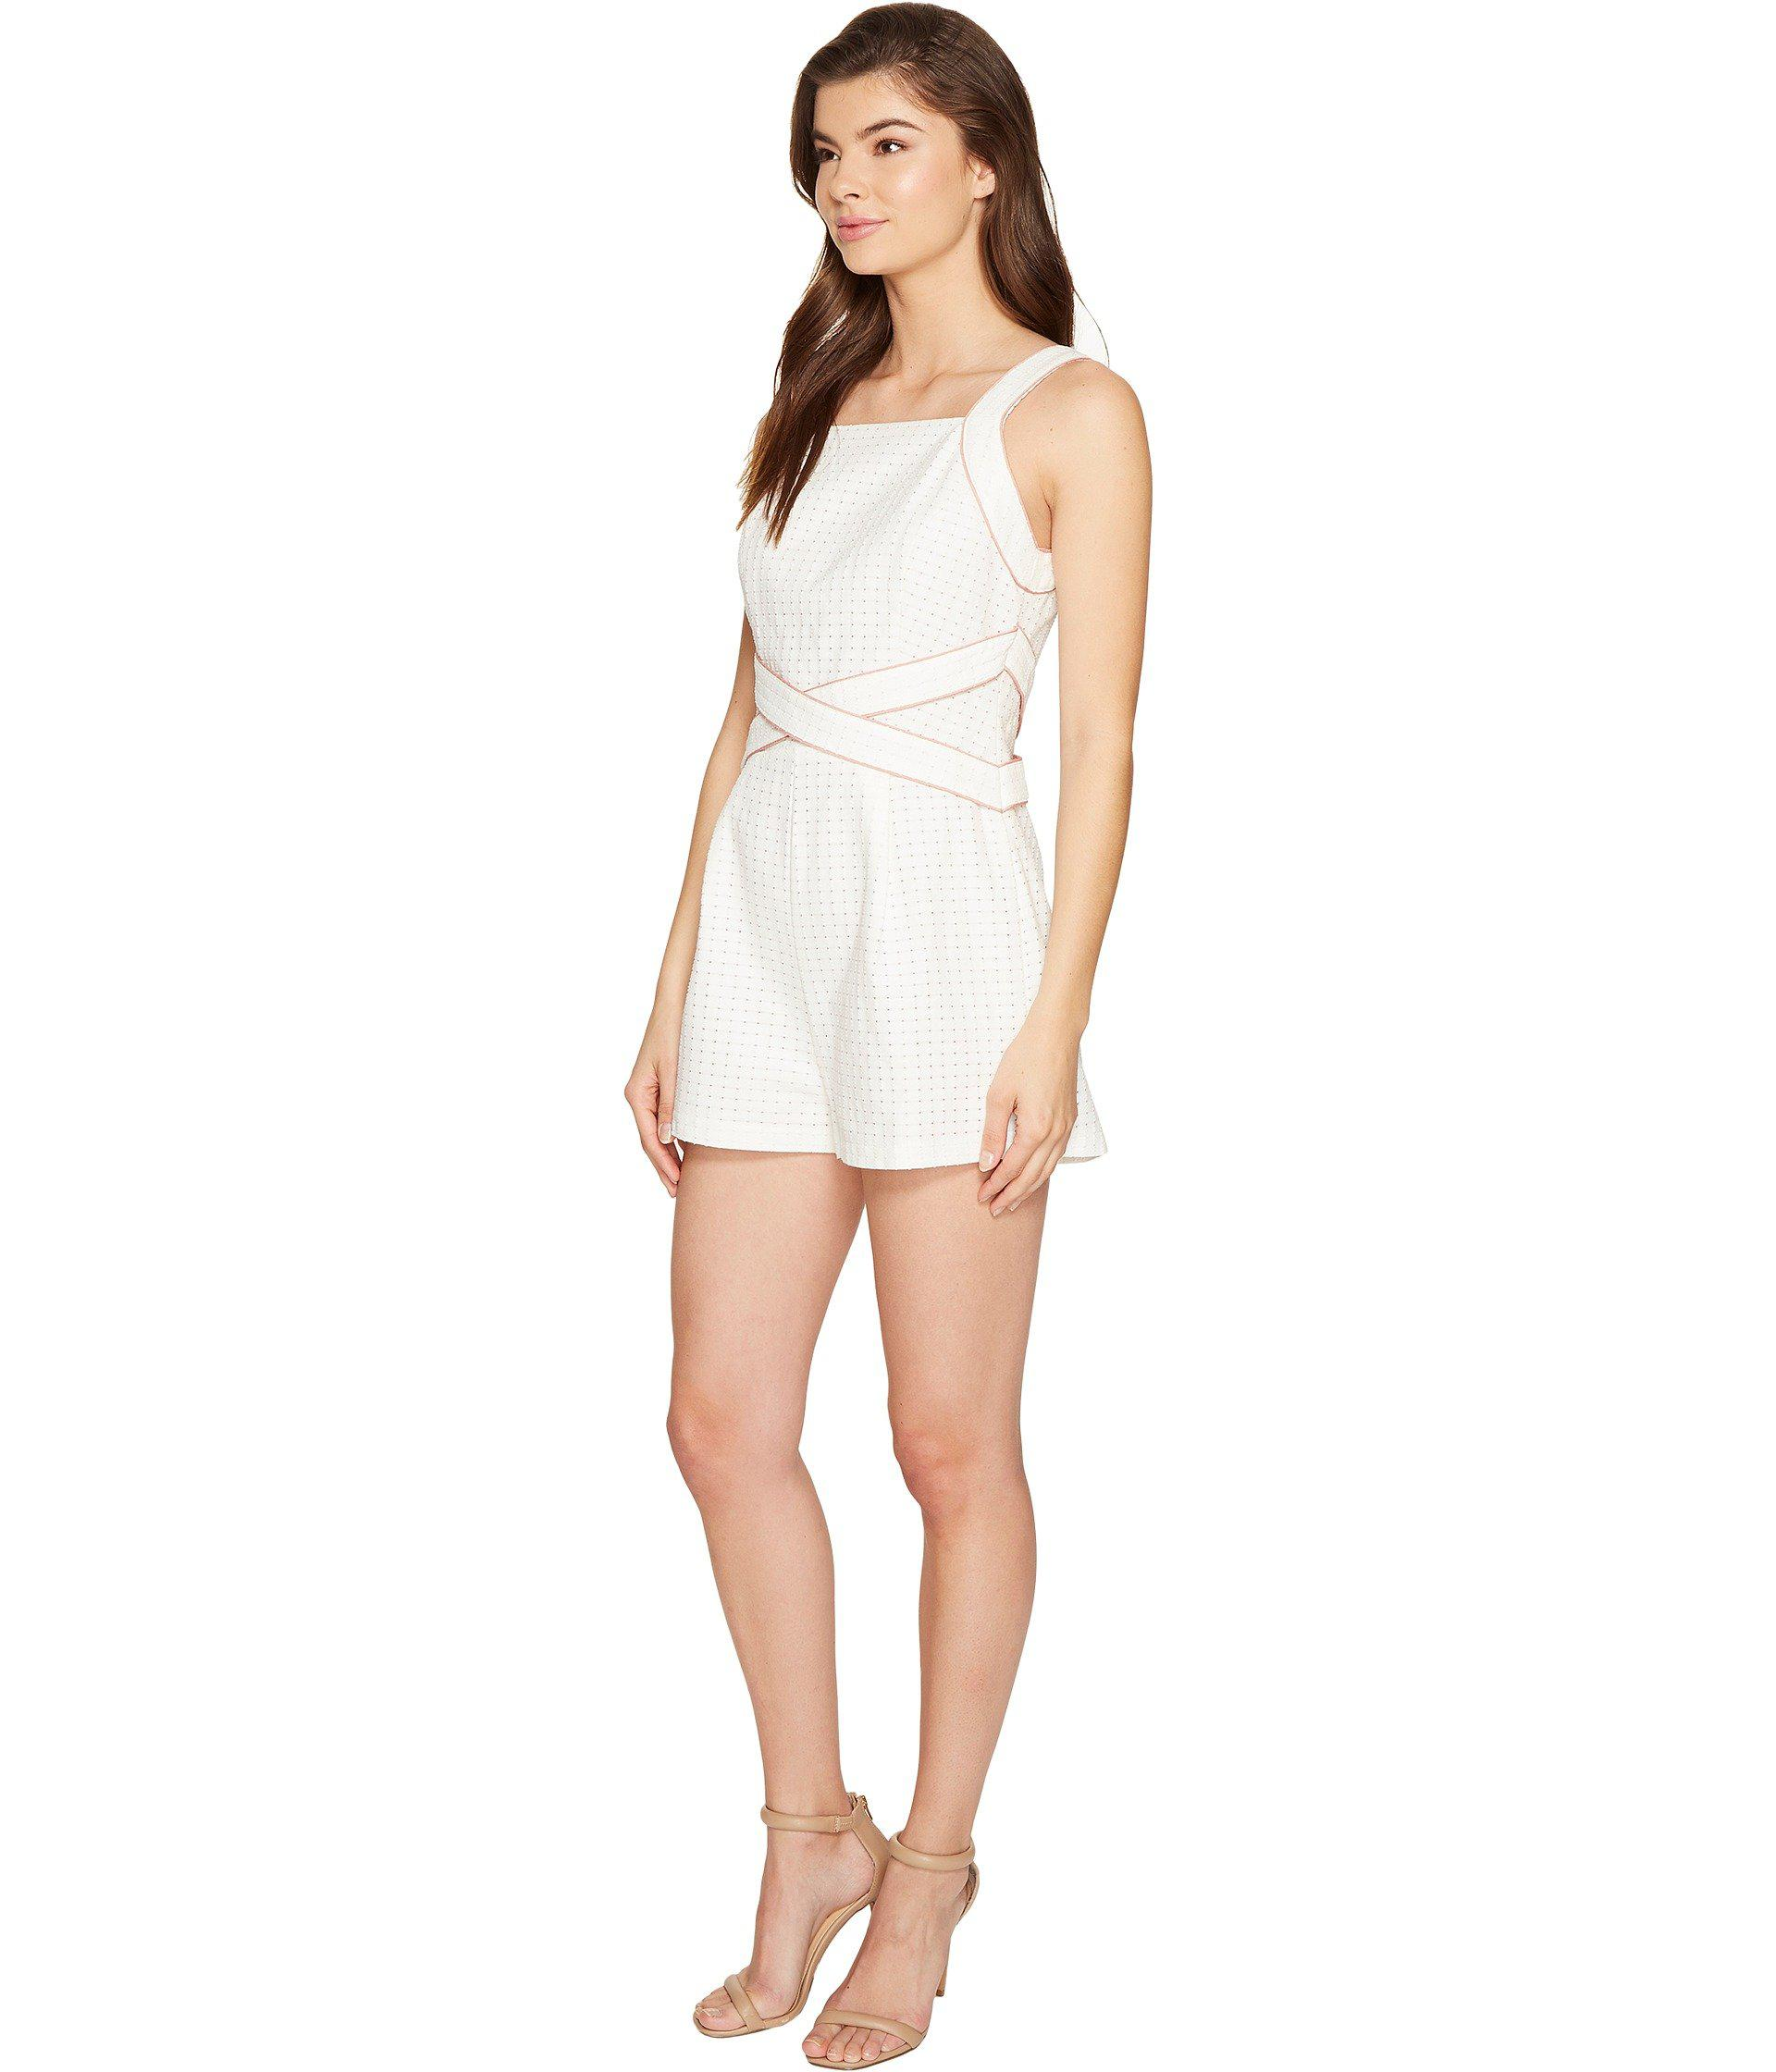 84f92c369fe1 Lyst - Adelyn Rae Constance Woven Jacquard Romper in White